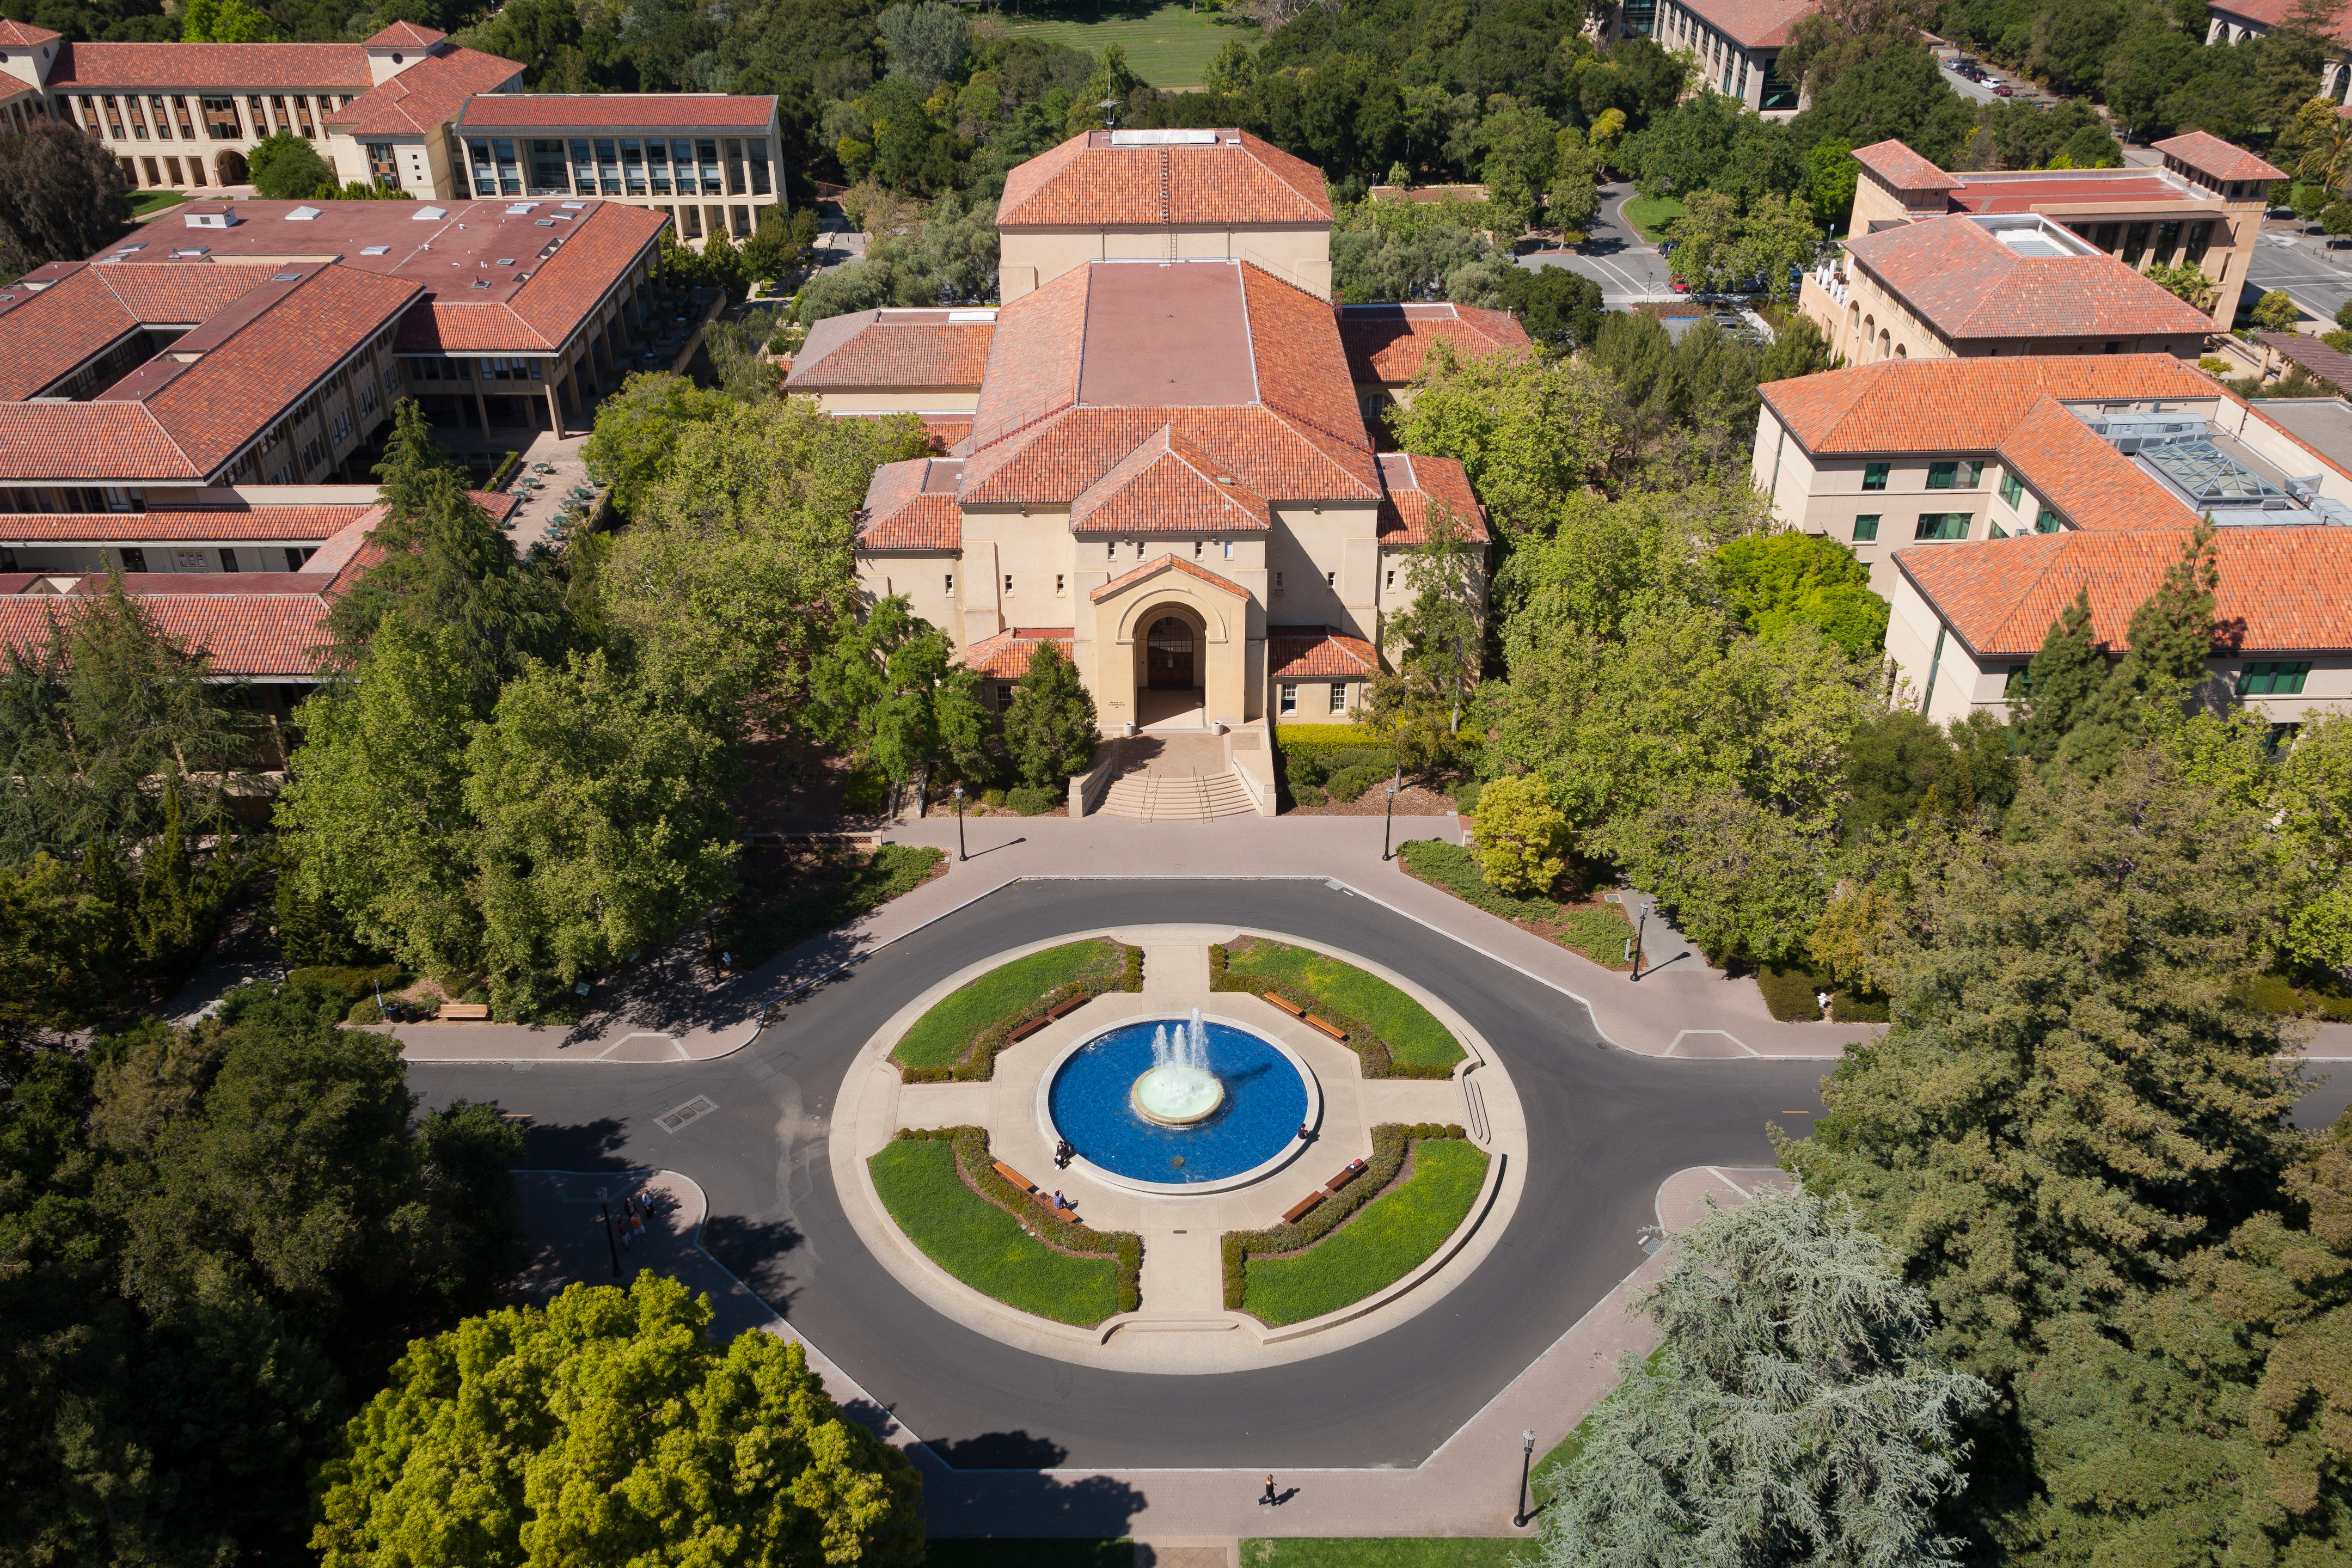 Stanford_University_from_Hoover_Tower_May_2011_001.jpg